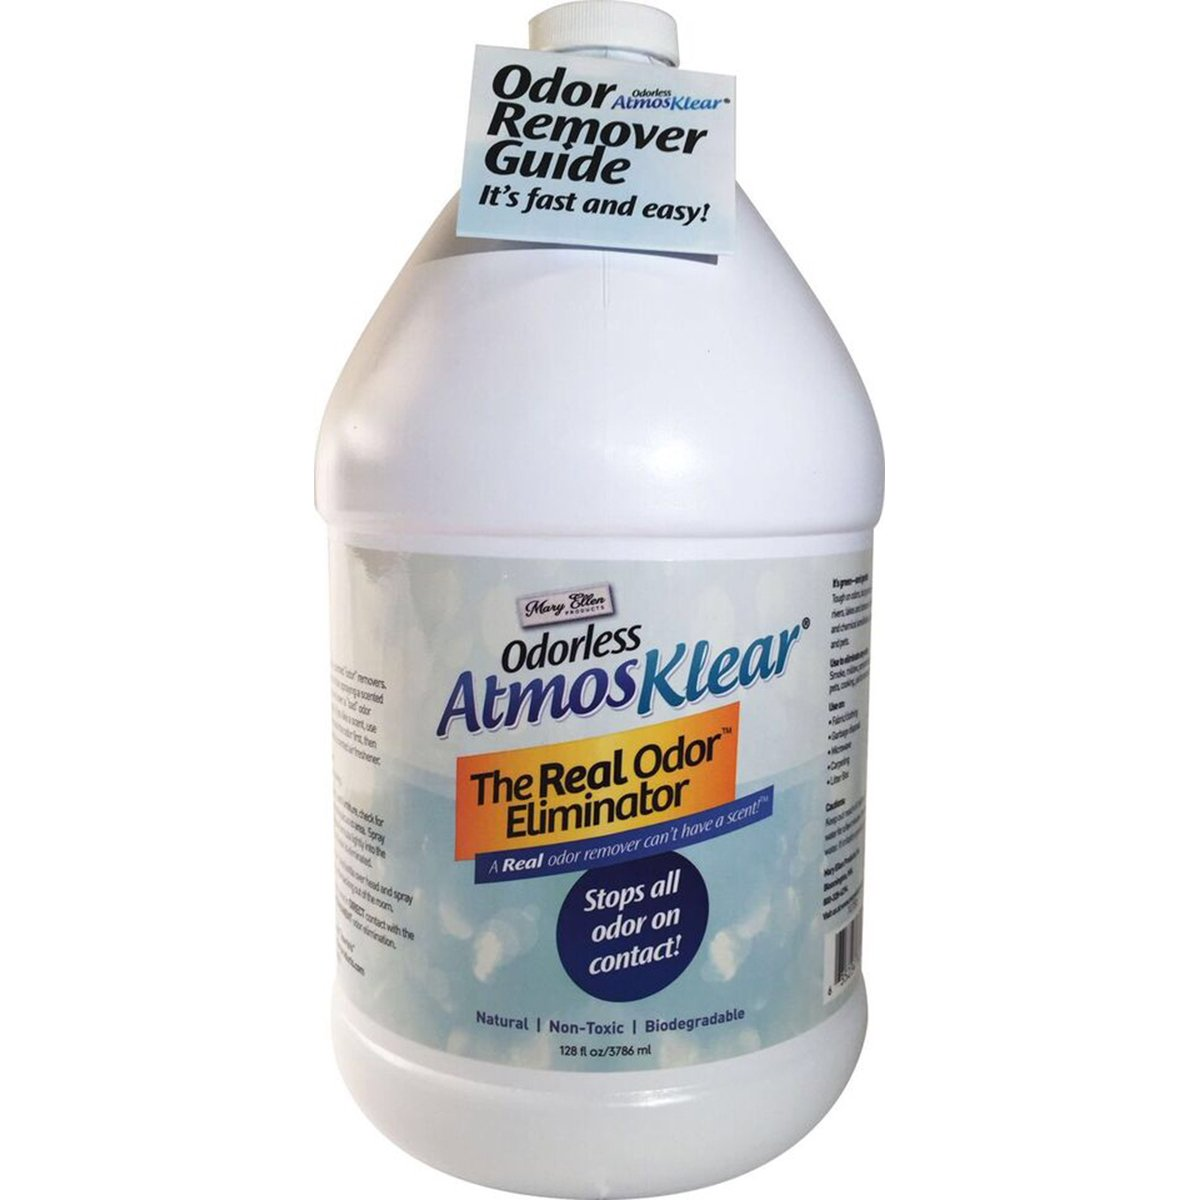 Amazon.com: Mary Ellen Products Atmosklear Odor Eliminator, 1 gallon ...